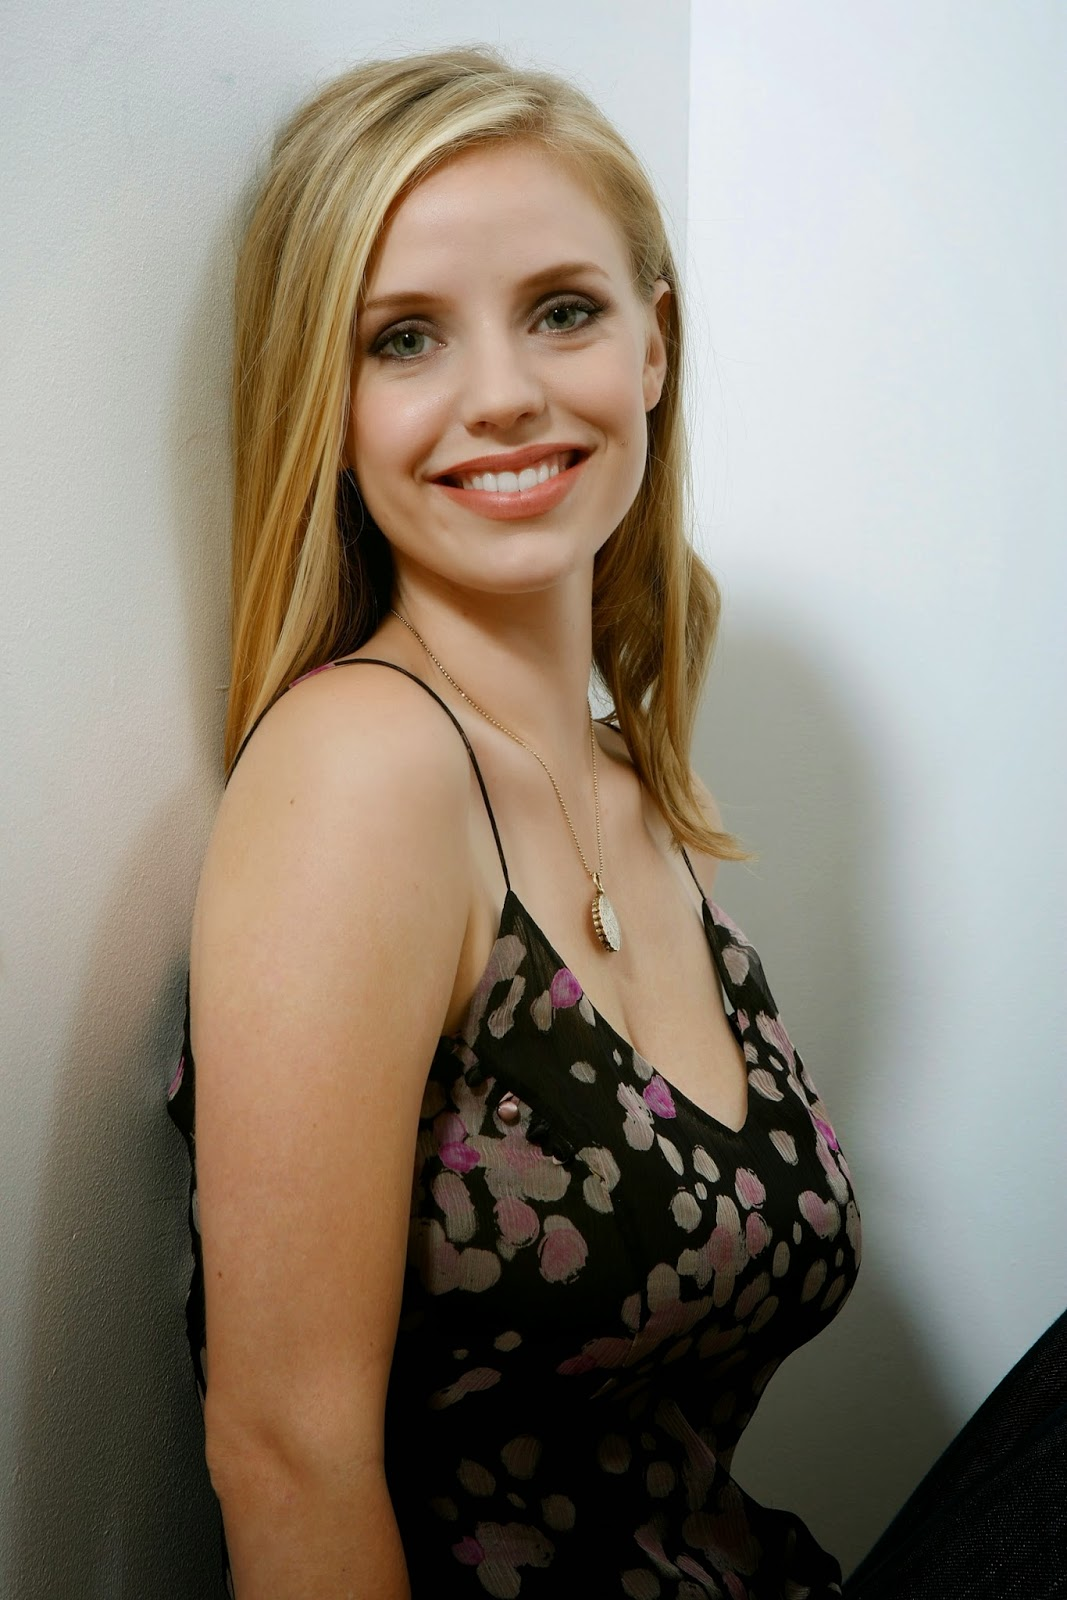 Pictures Kelli Garner naked (83 foto and video), Topless, Hot, Selfie, underwear 2015